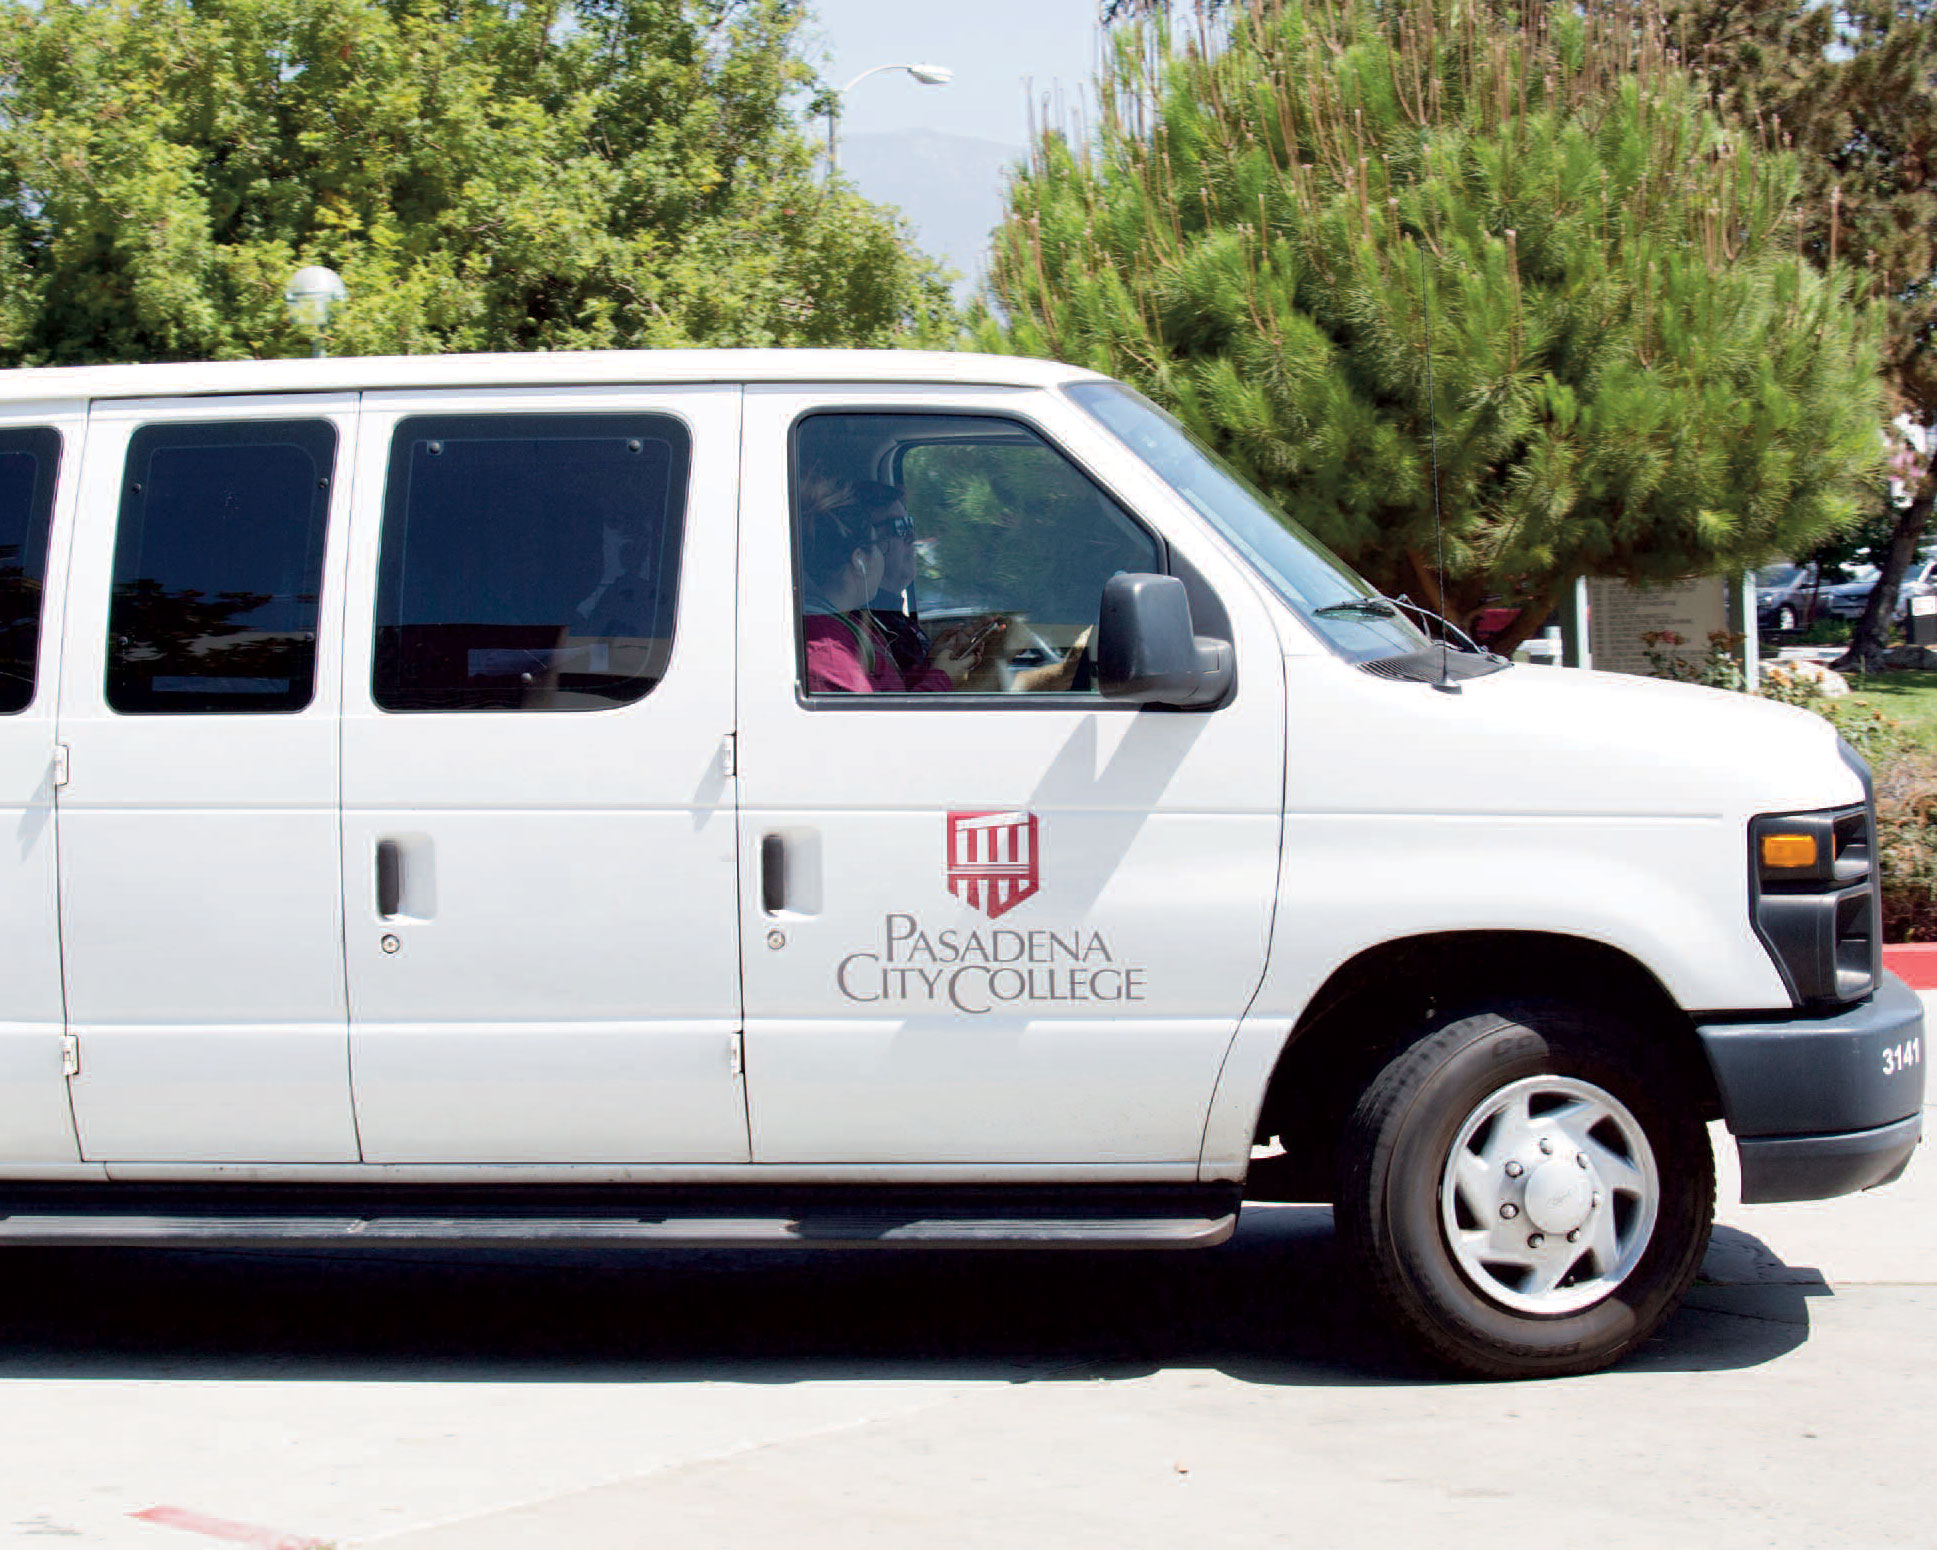 New PCC Shuttle service to Rosemead Campus!